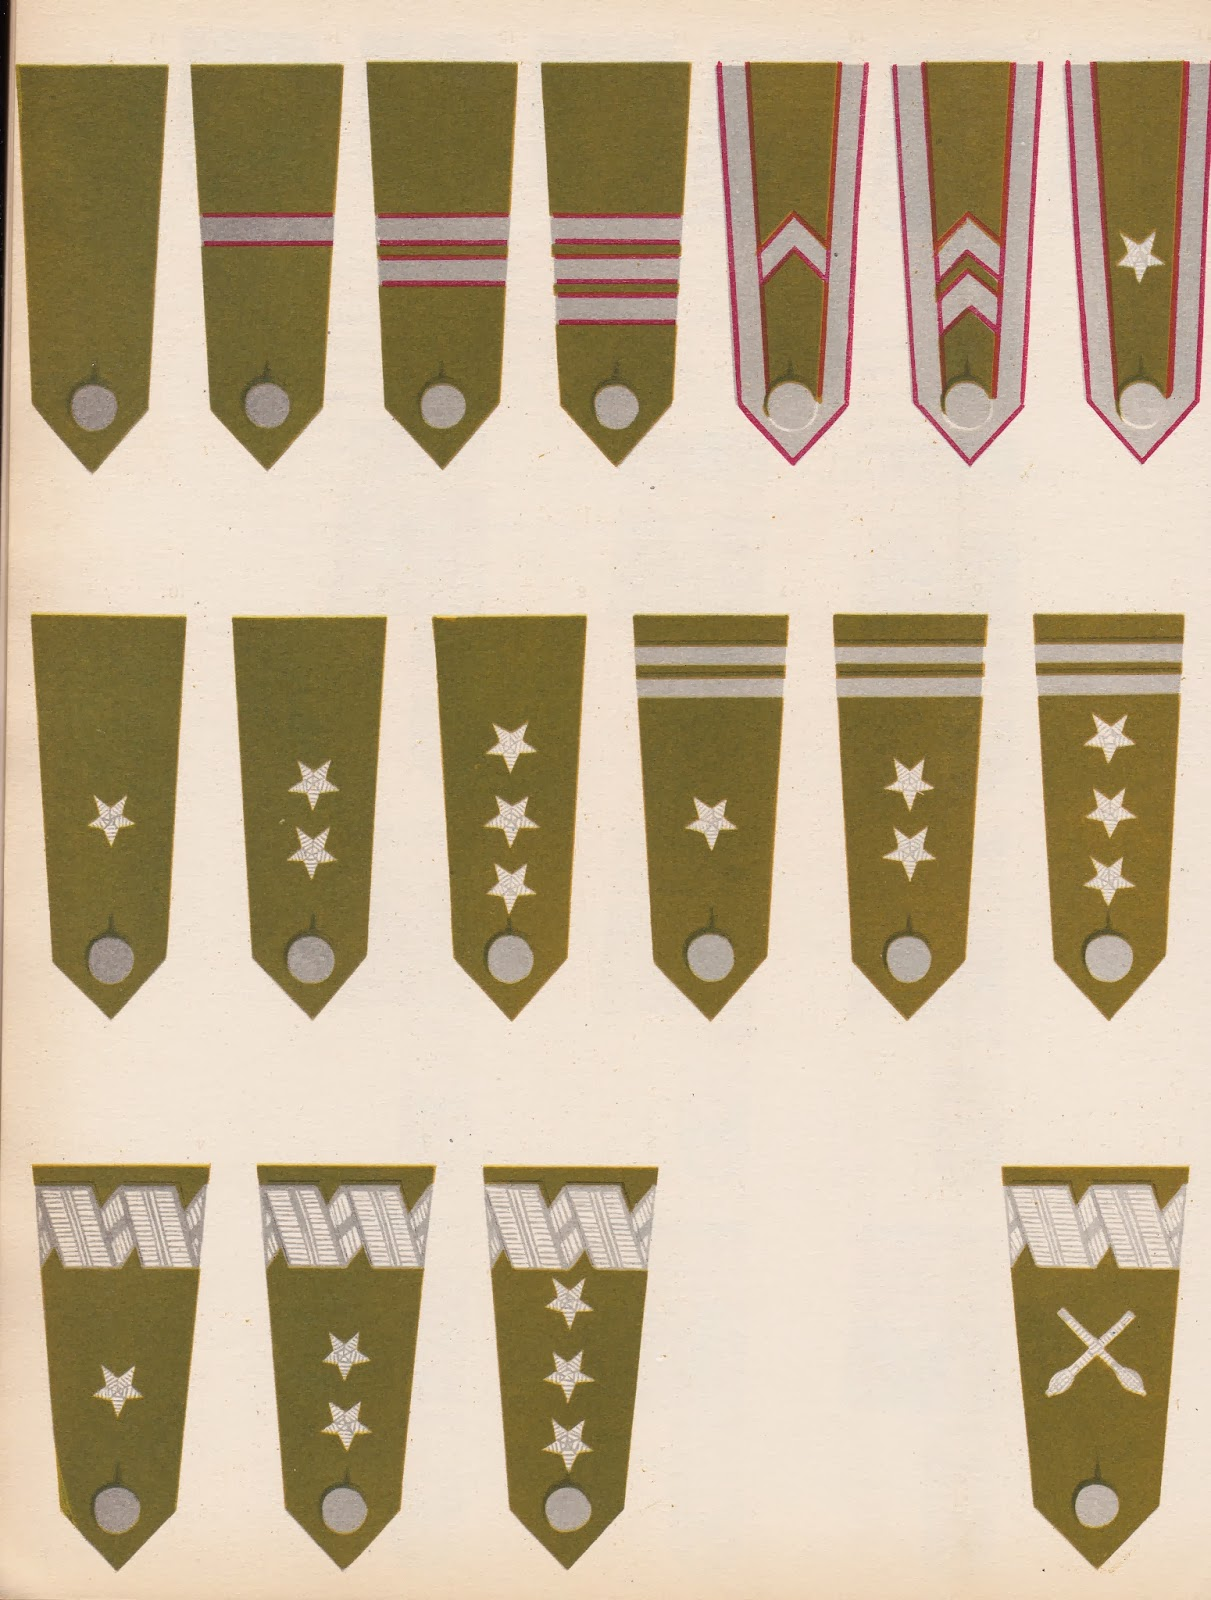 Polish Army Insignia 1939 - Polish Greatness Blog